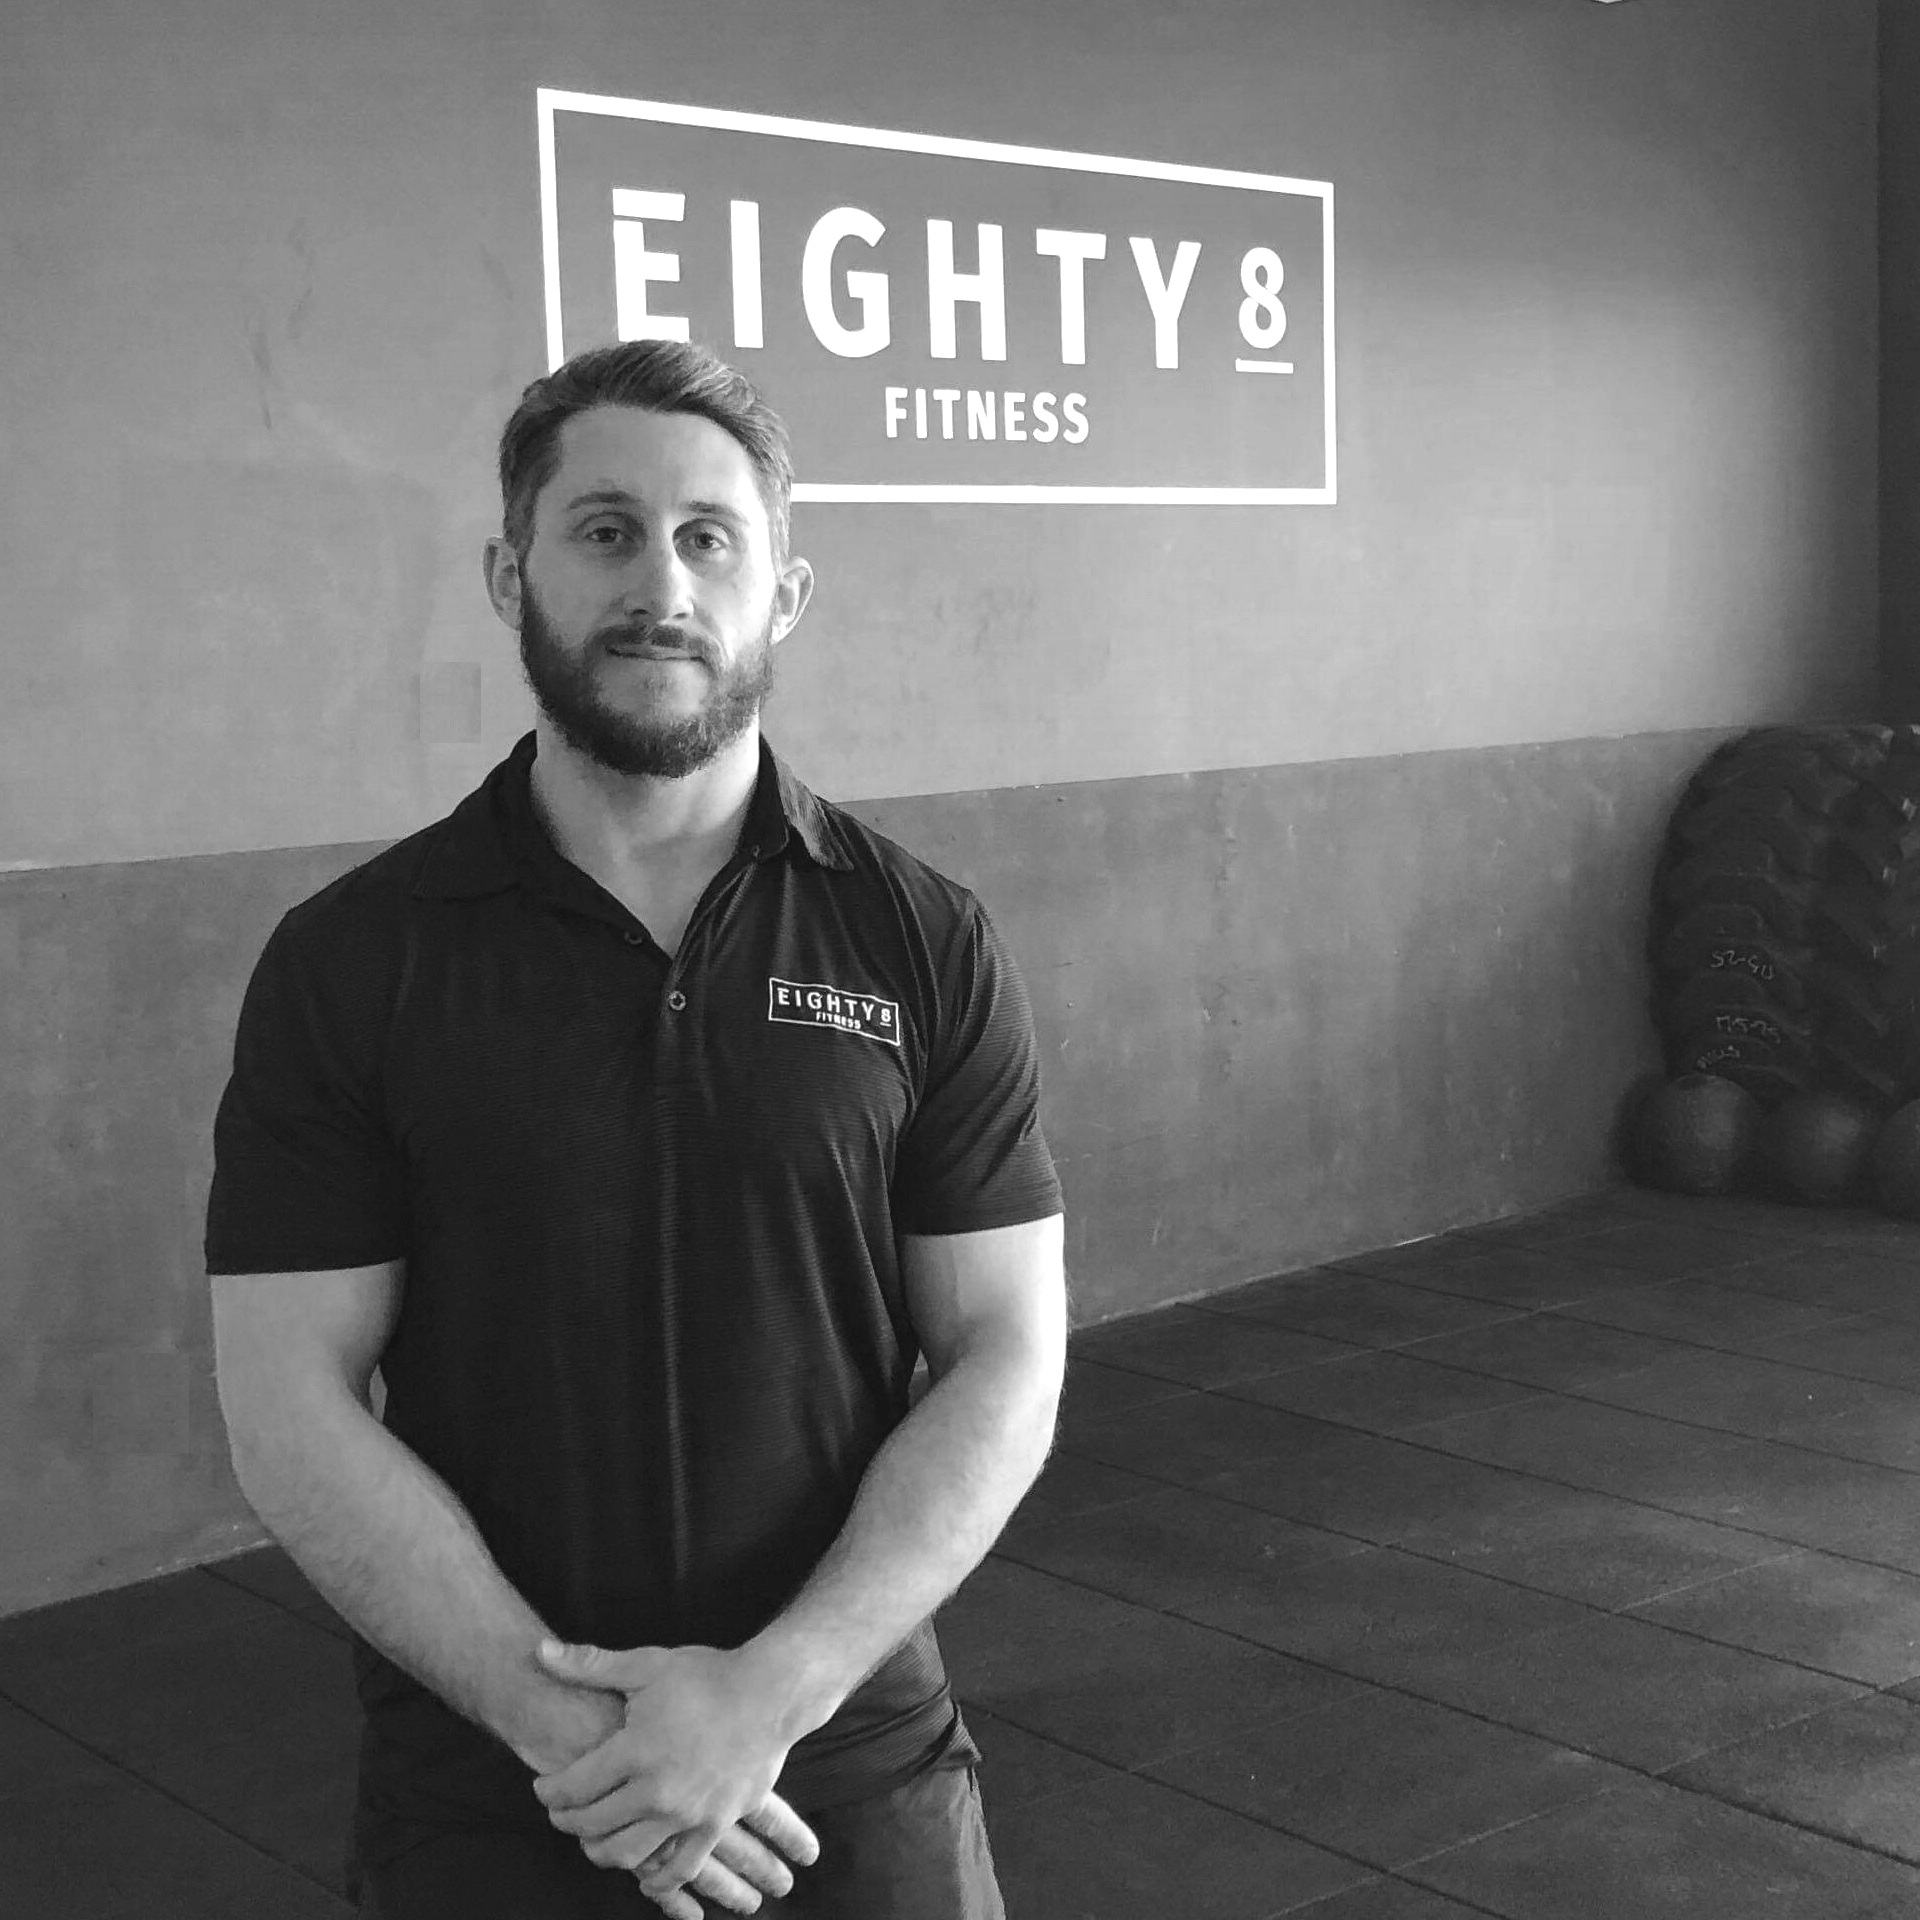 Health Coach & Trainer - Tyler Stevens - Eighty8 Fitness